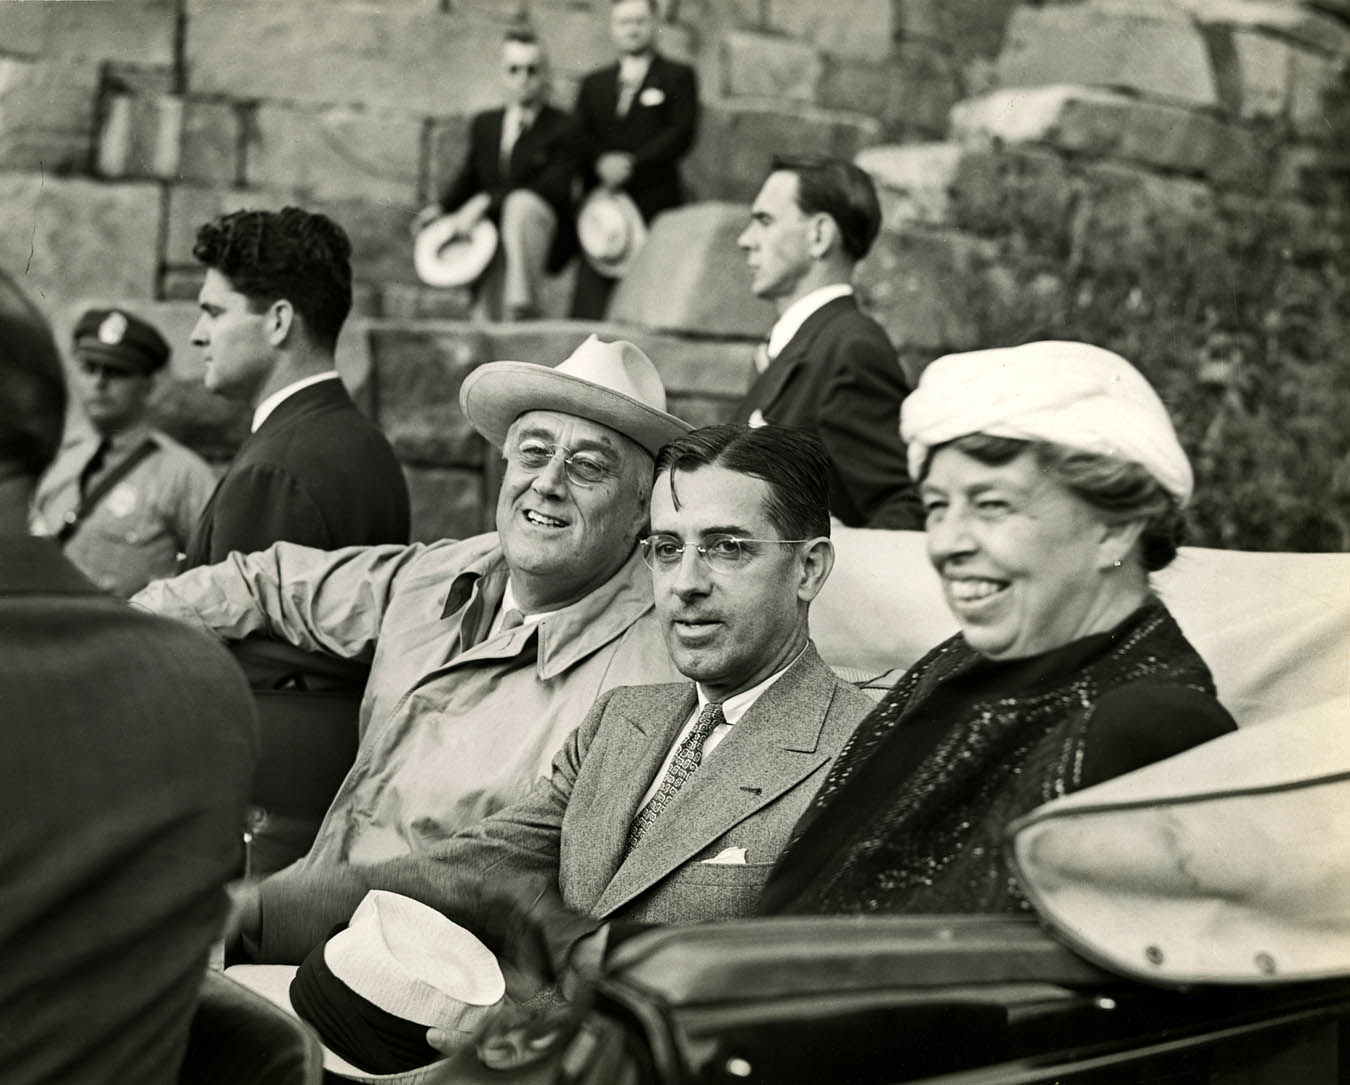 President Franklin Roosevelt, Governor Prentice Cooper of Tennessee, & First Lady Eleanor Roosevelt Attend the Dedication of the Great Smoky Mountains National Park, 1940